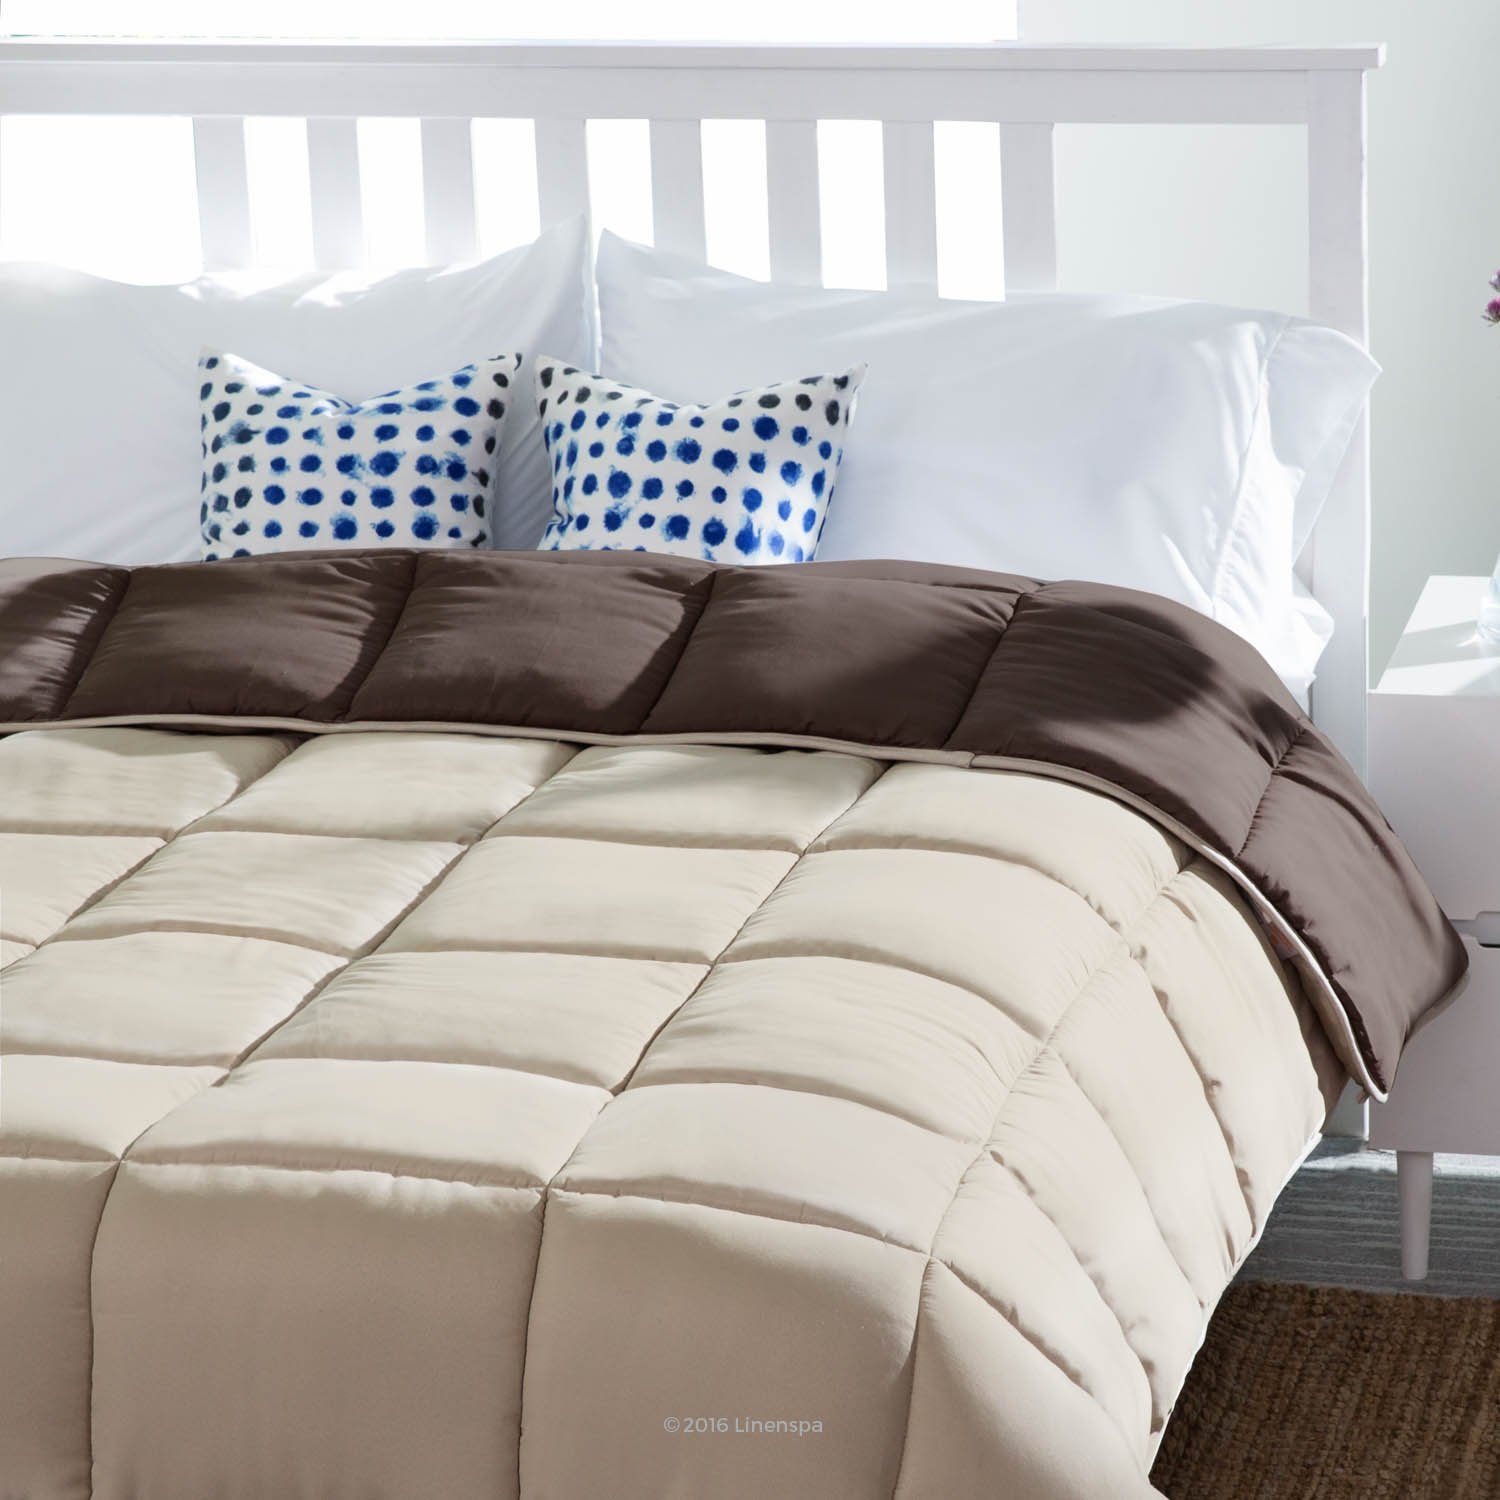 LINENSPA Reversible Down Alternative Quilted Comforter